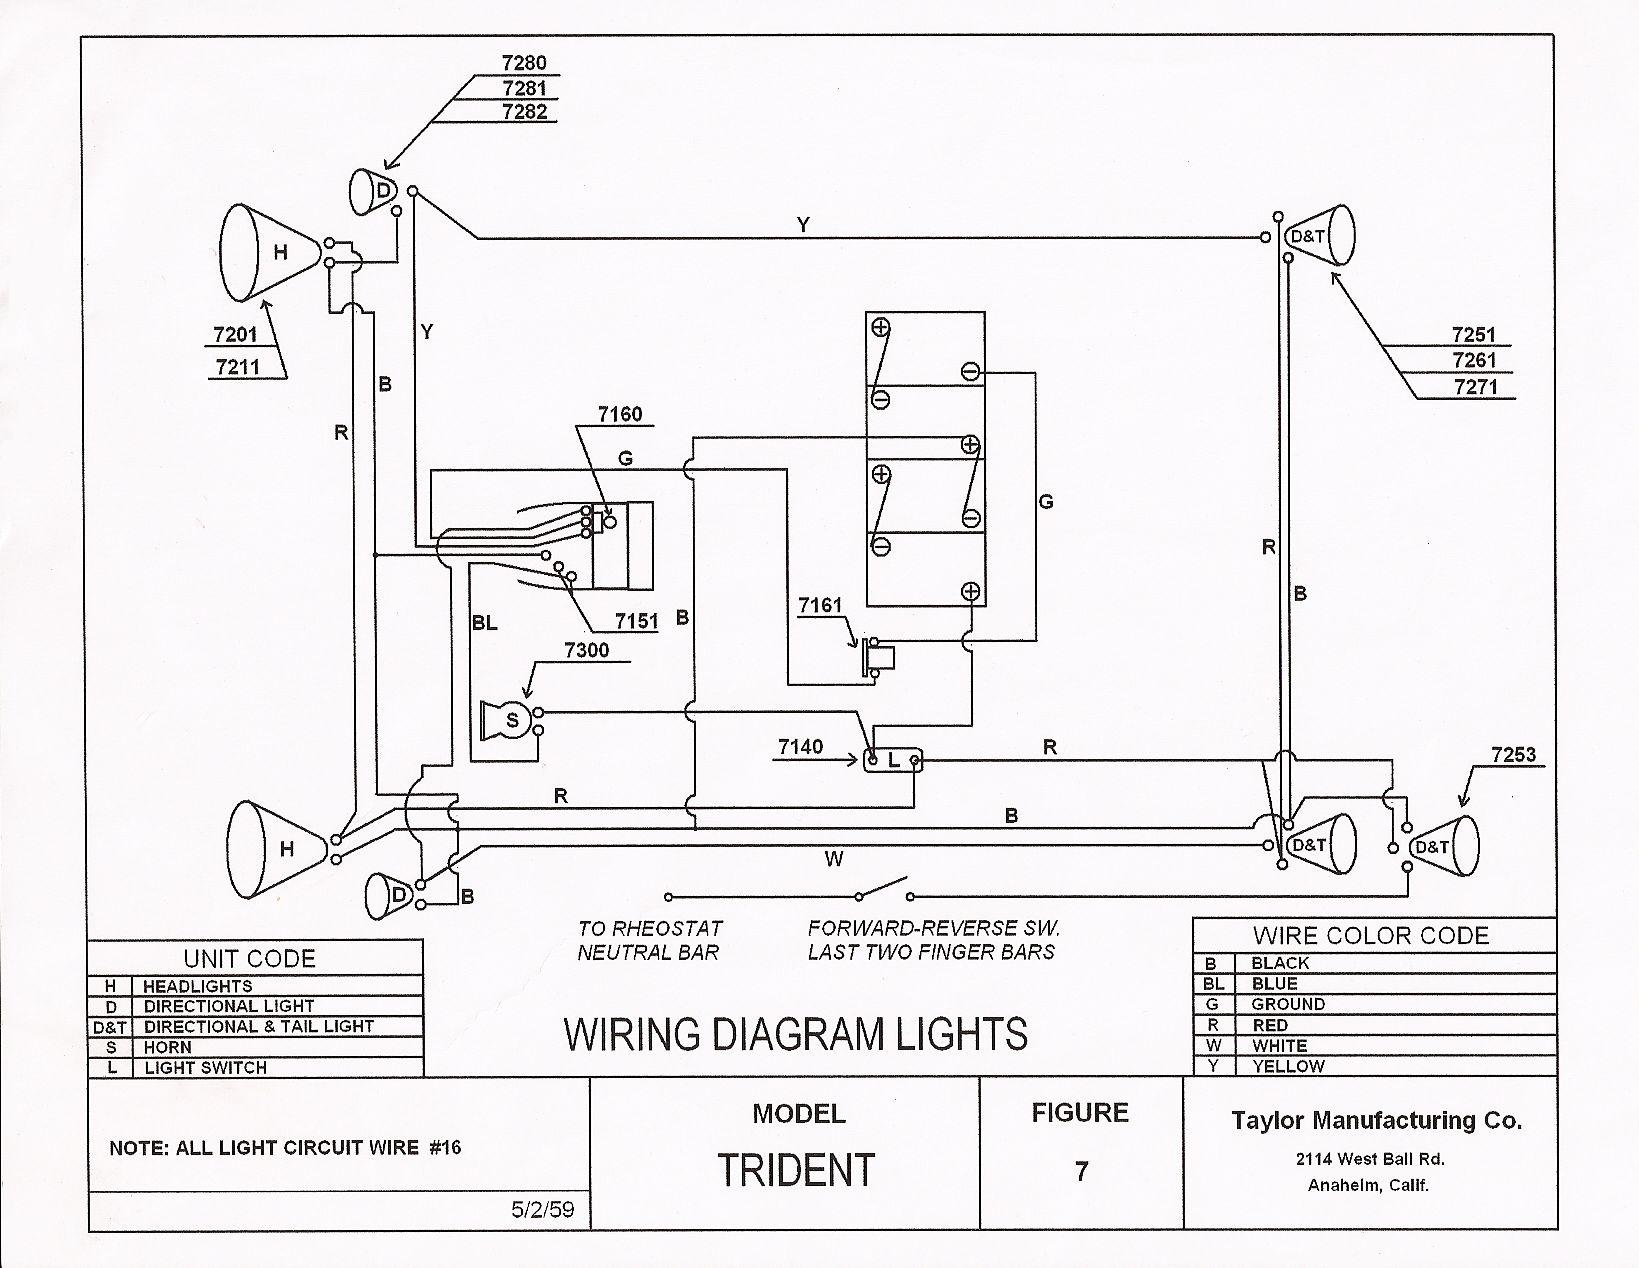 hight resolution of tomberlin wiring diagram wiring diagram nametaylor dunn wiring harness wiring diagram expert 2009 tomberlin emerge wiring